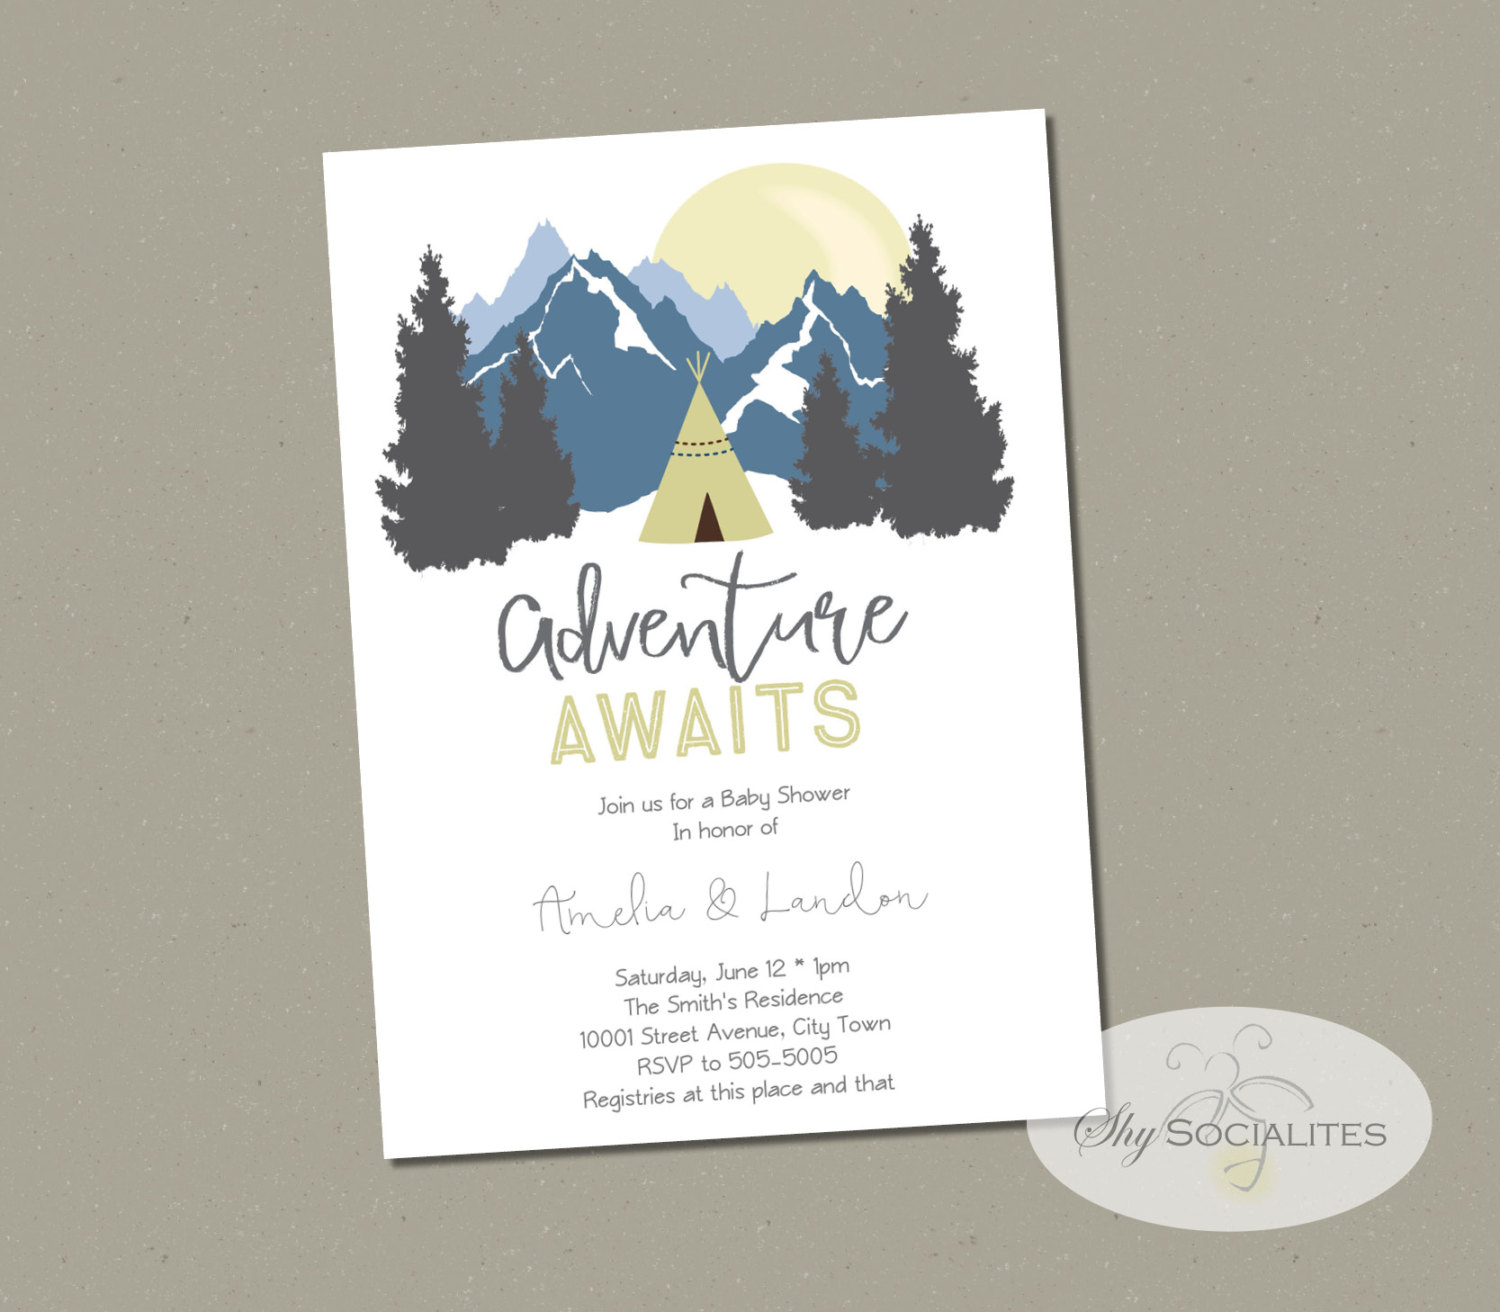 country wedding invite sayings - Picture Ideas References